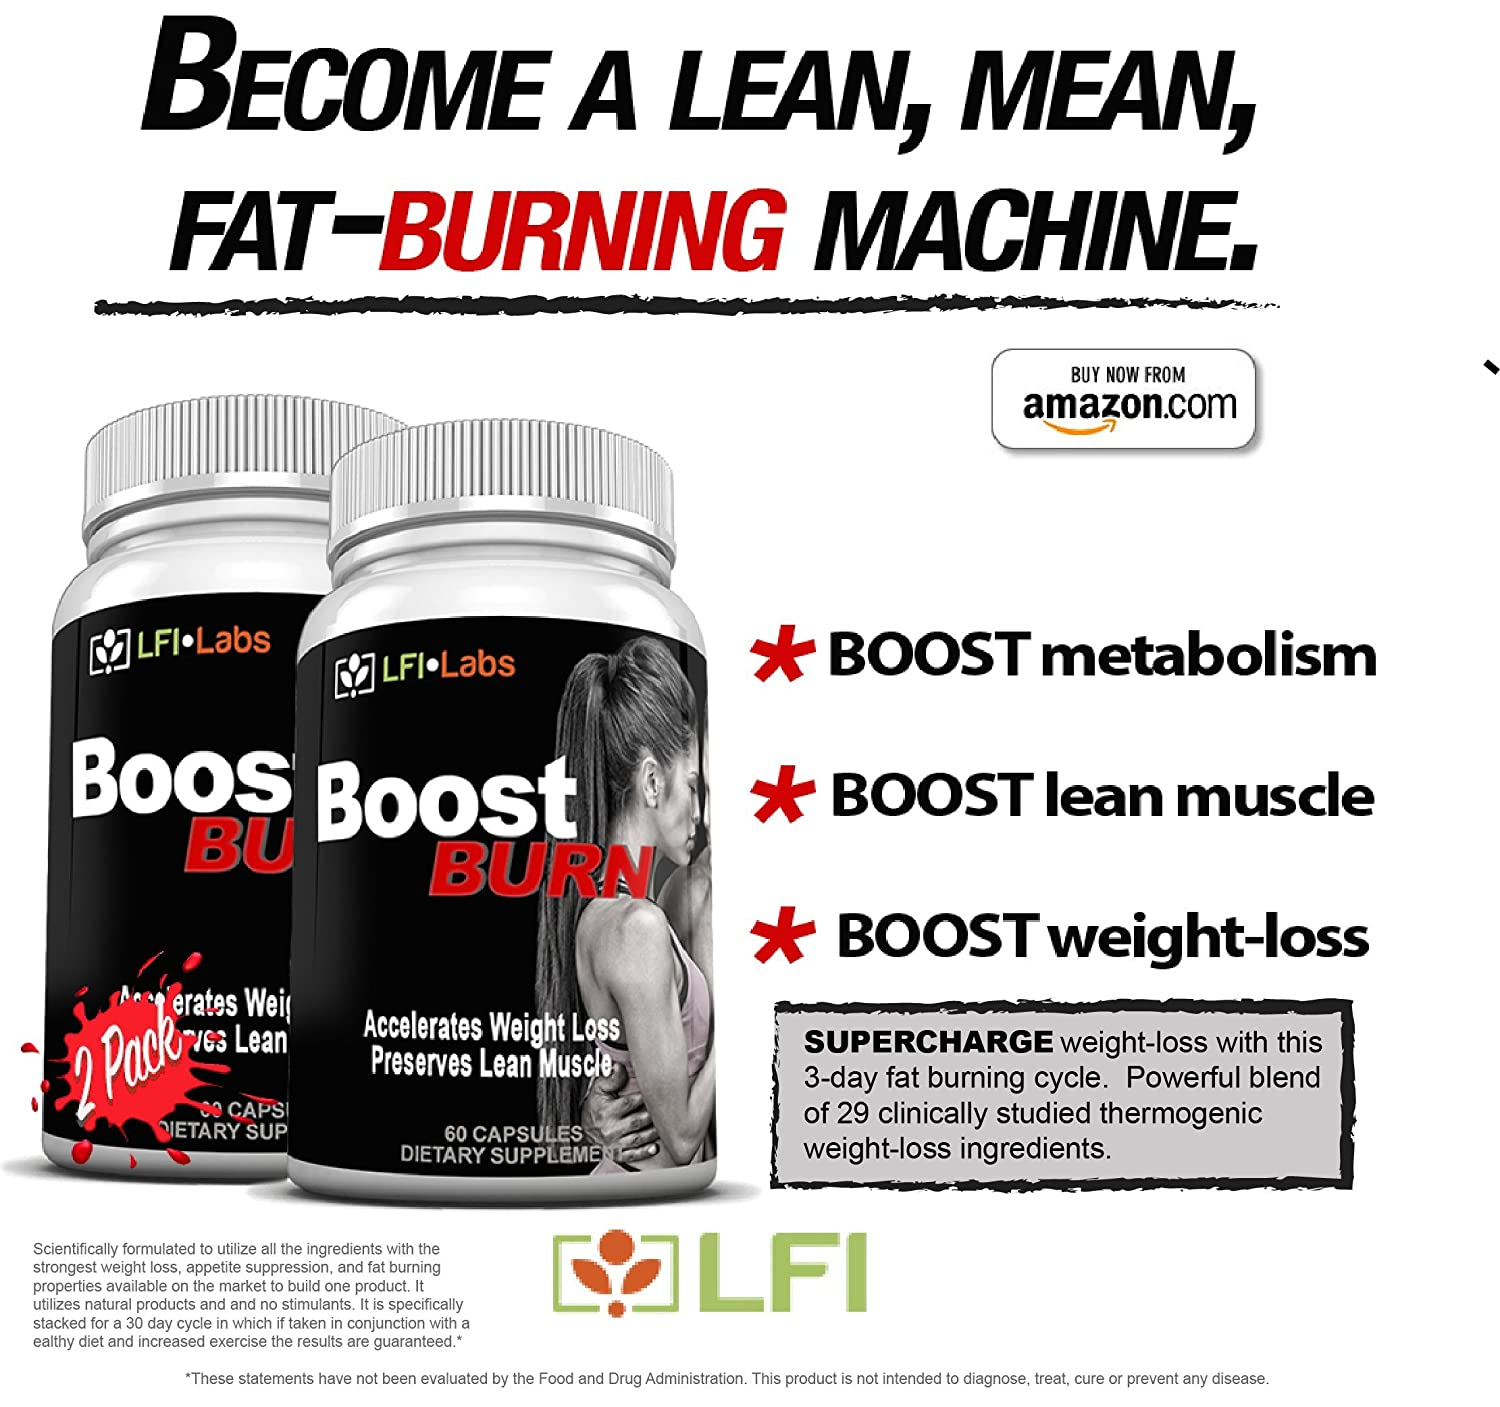 How to lose body fat and lean out